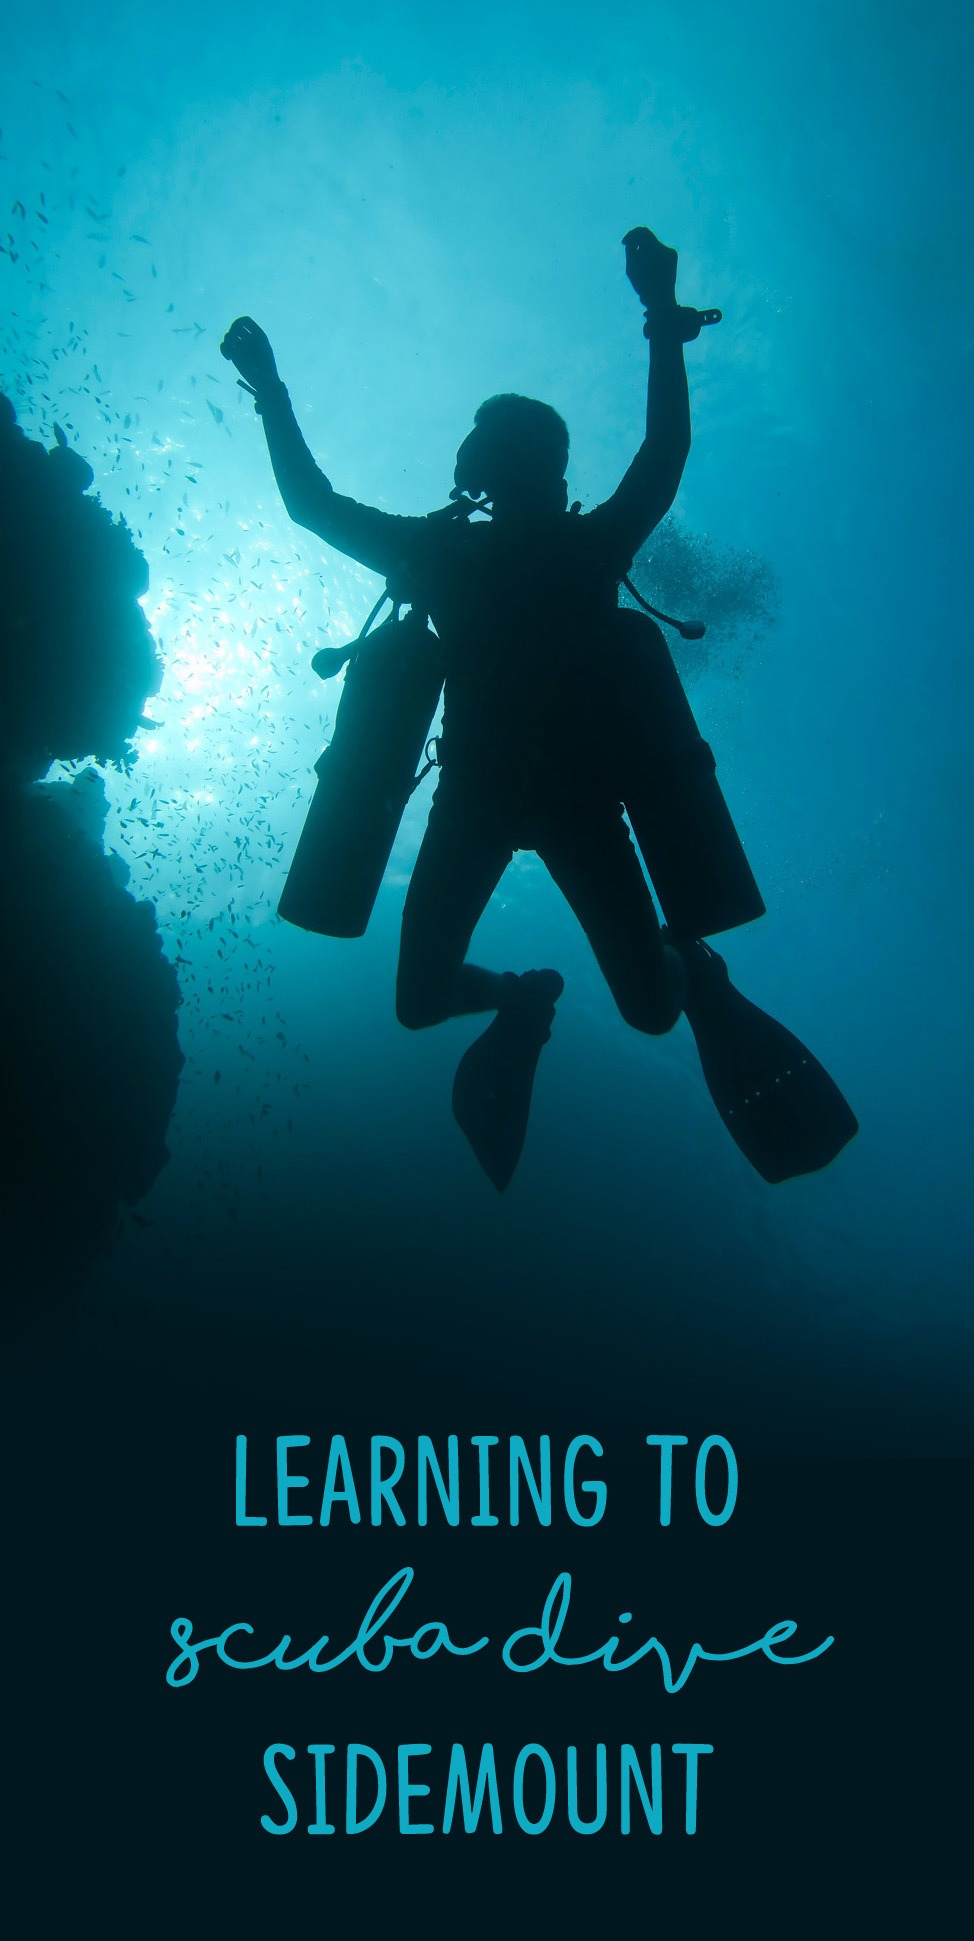 Learning to Scuba Dive Sidemount